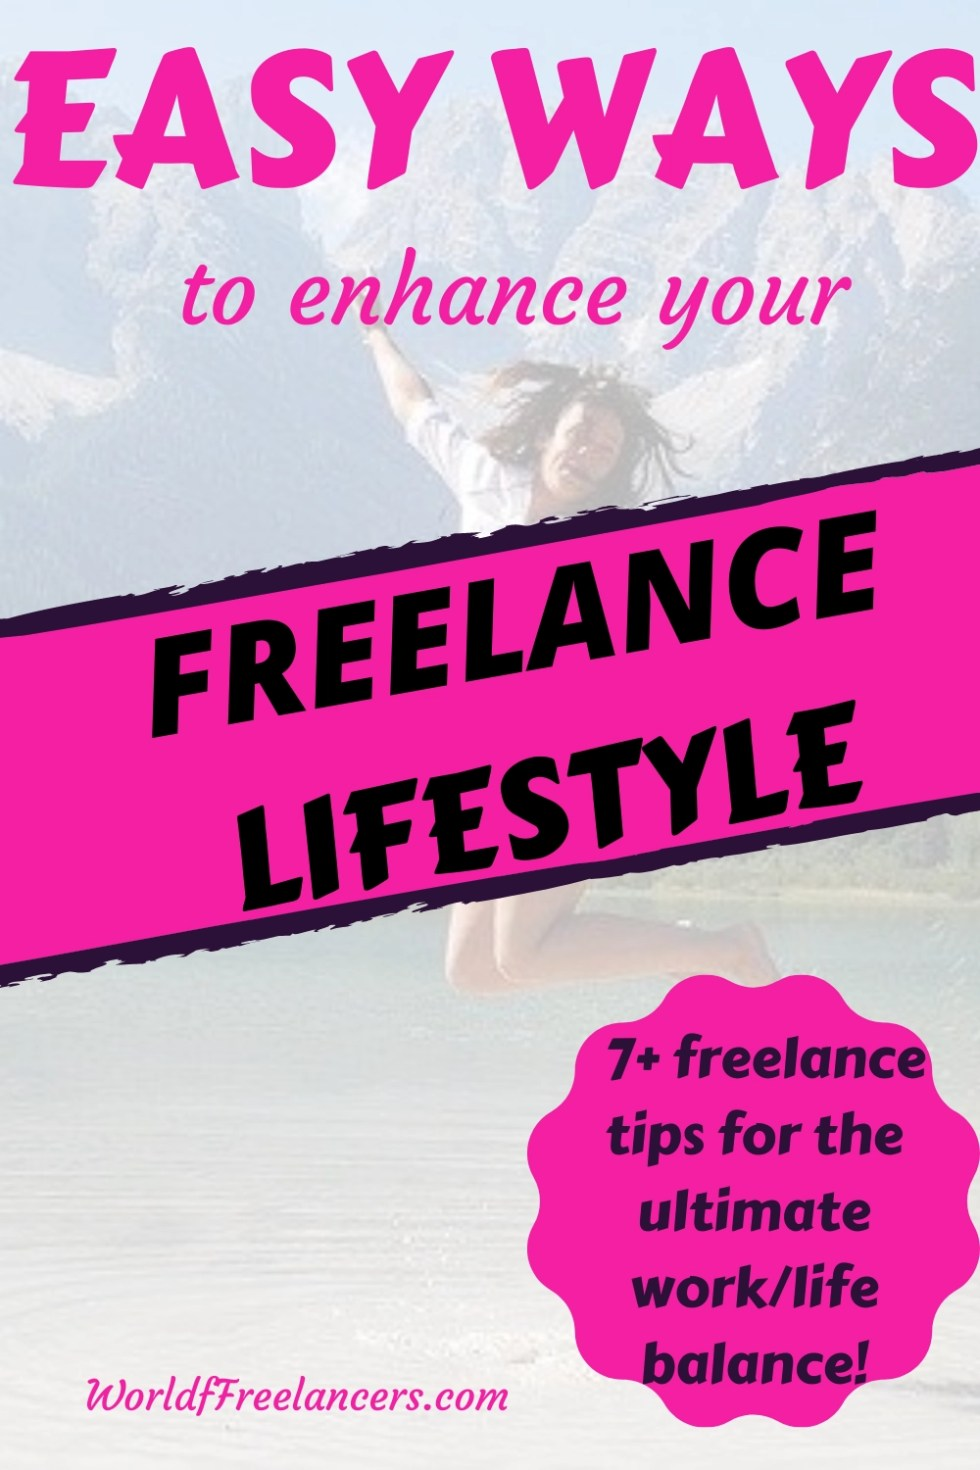 Easy ways to enhance your freelance lifestyle